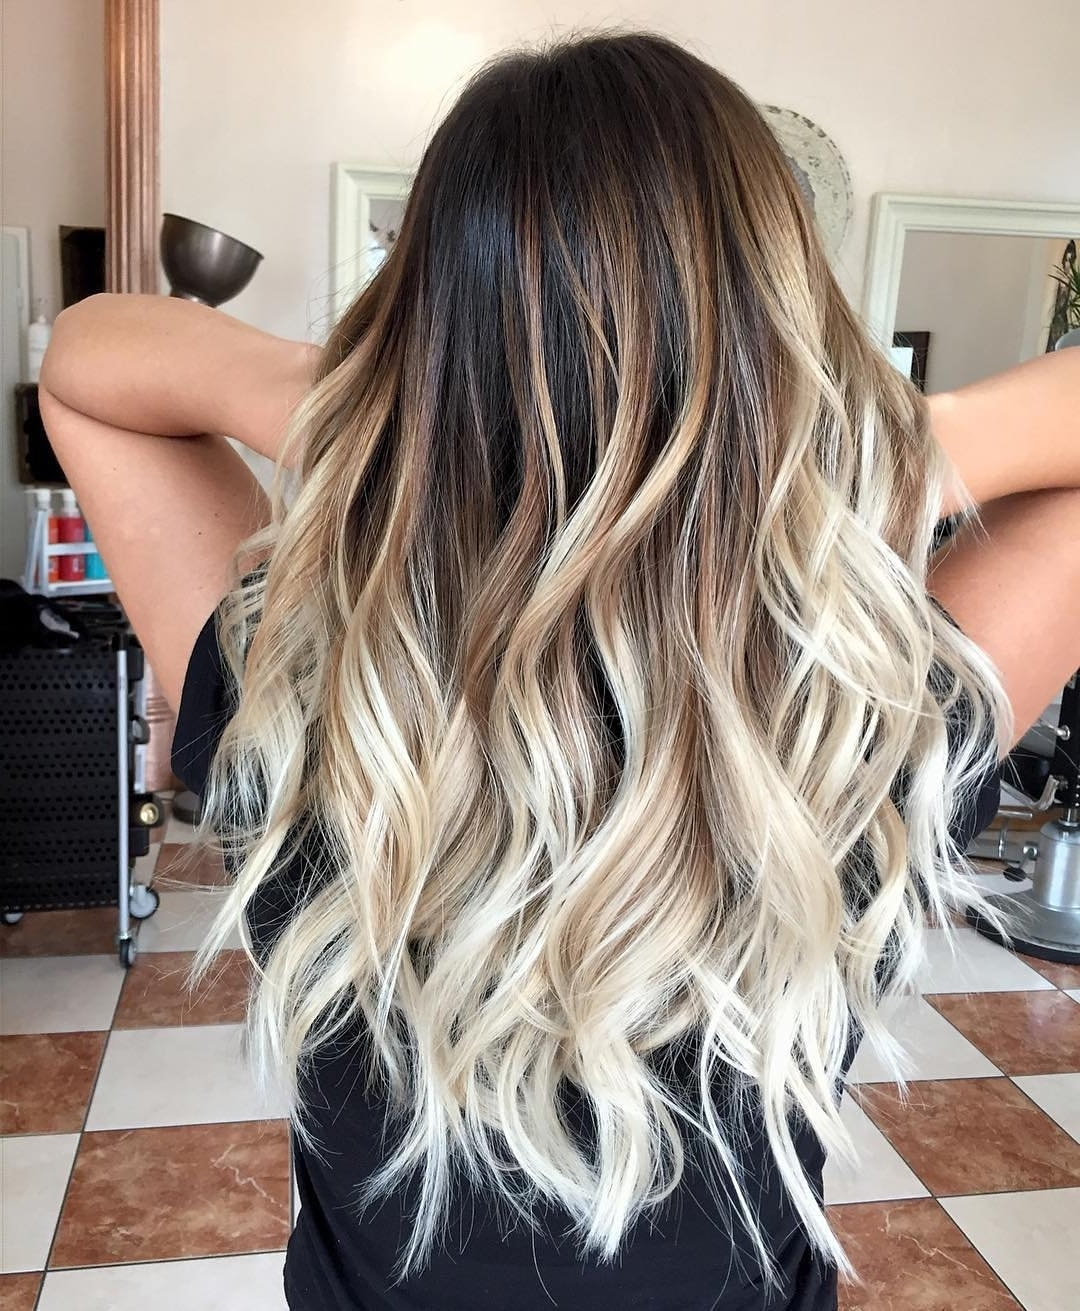 Trendy Tousled Shoulder Length Ombre Blonde Hairstyles Throughout 10 Medium Length Hair Color Heaven – Women Medium Hairstyles (View 16 of 20)